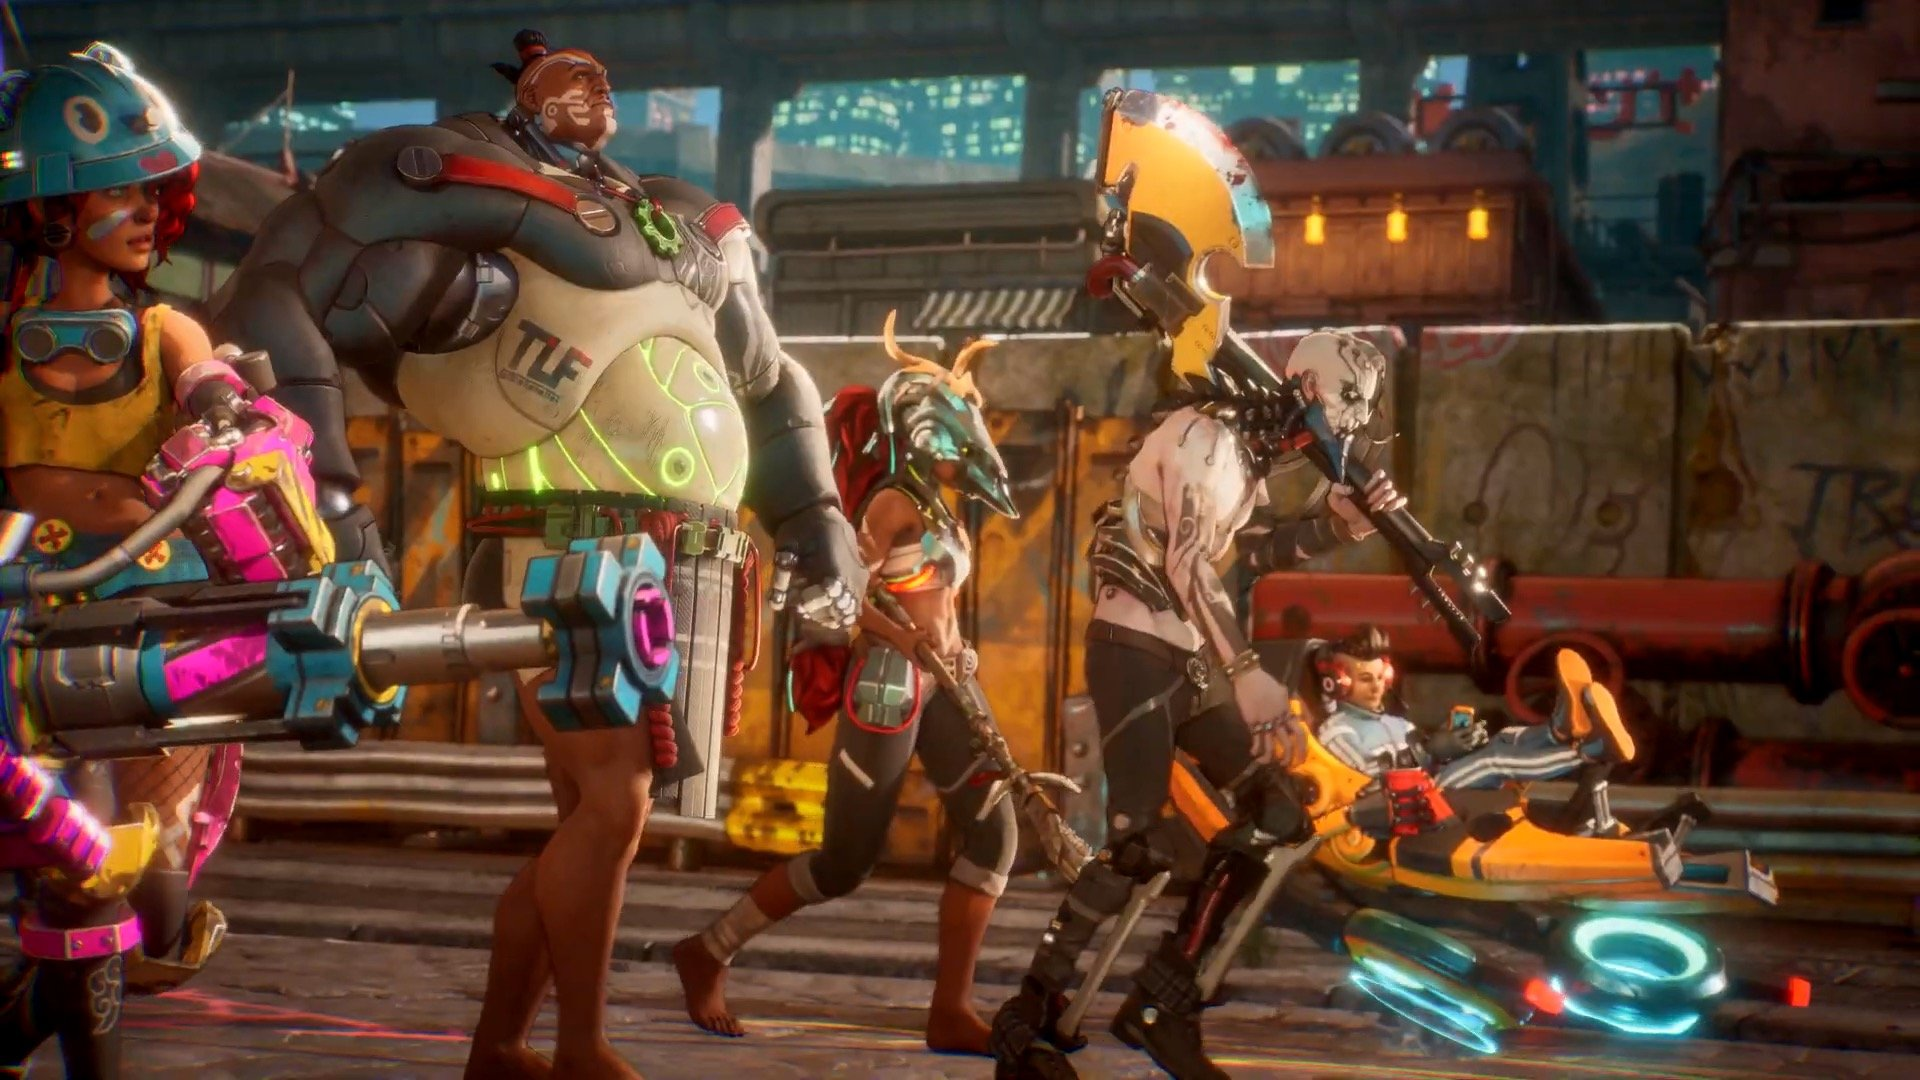 All playable characters in Bleeding Edge